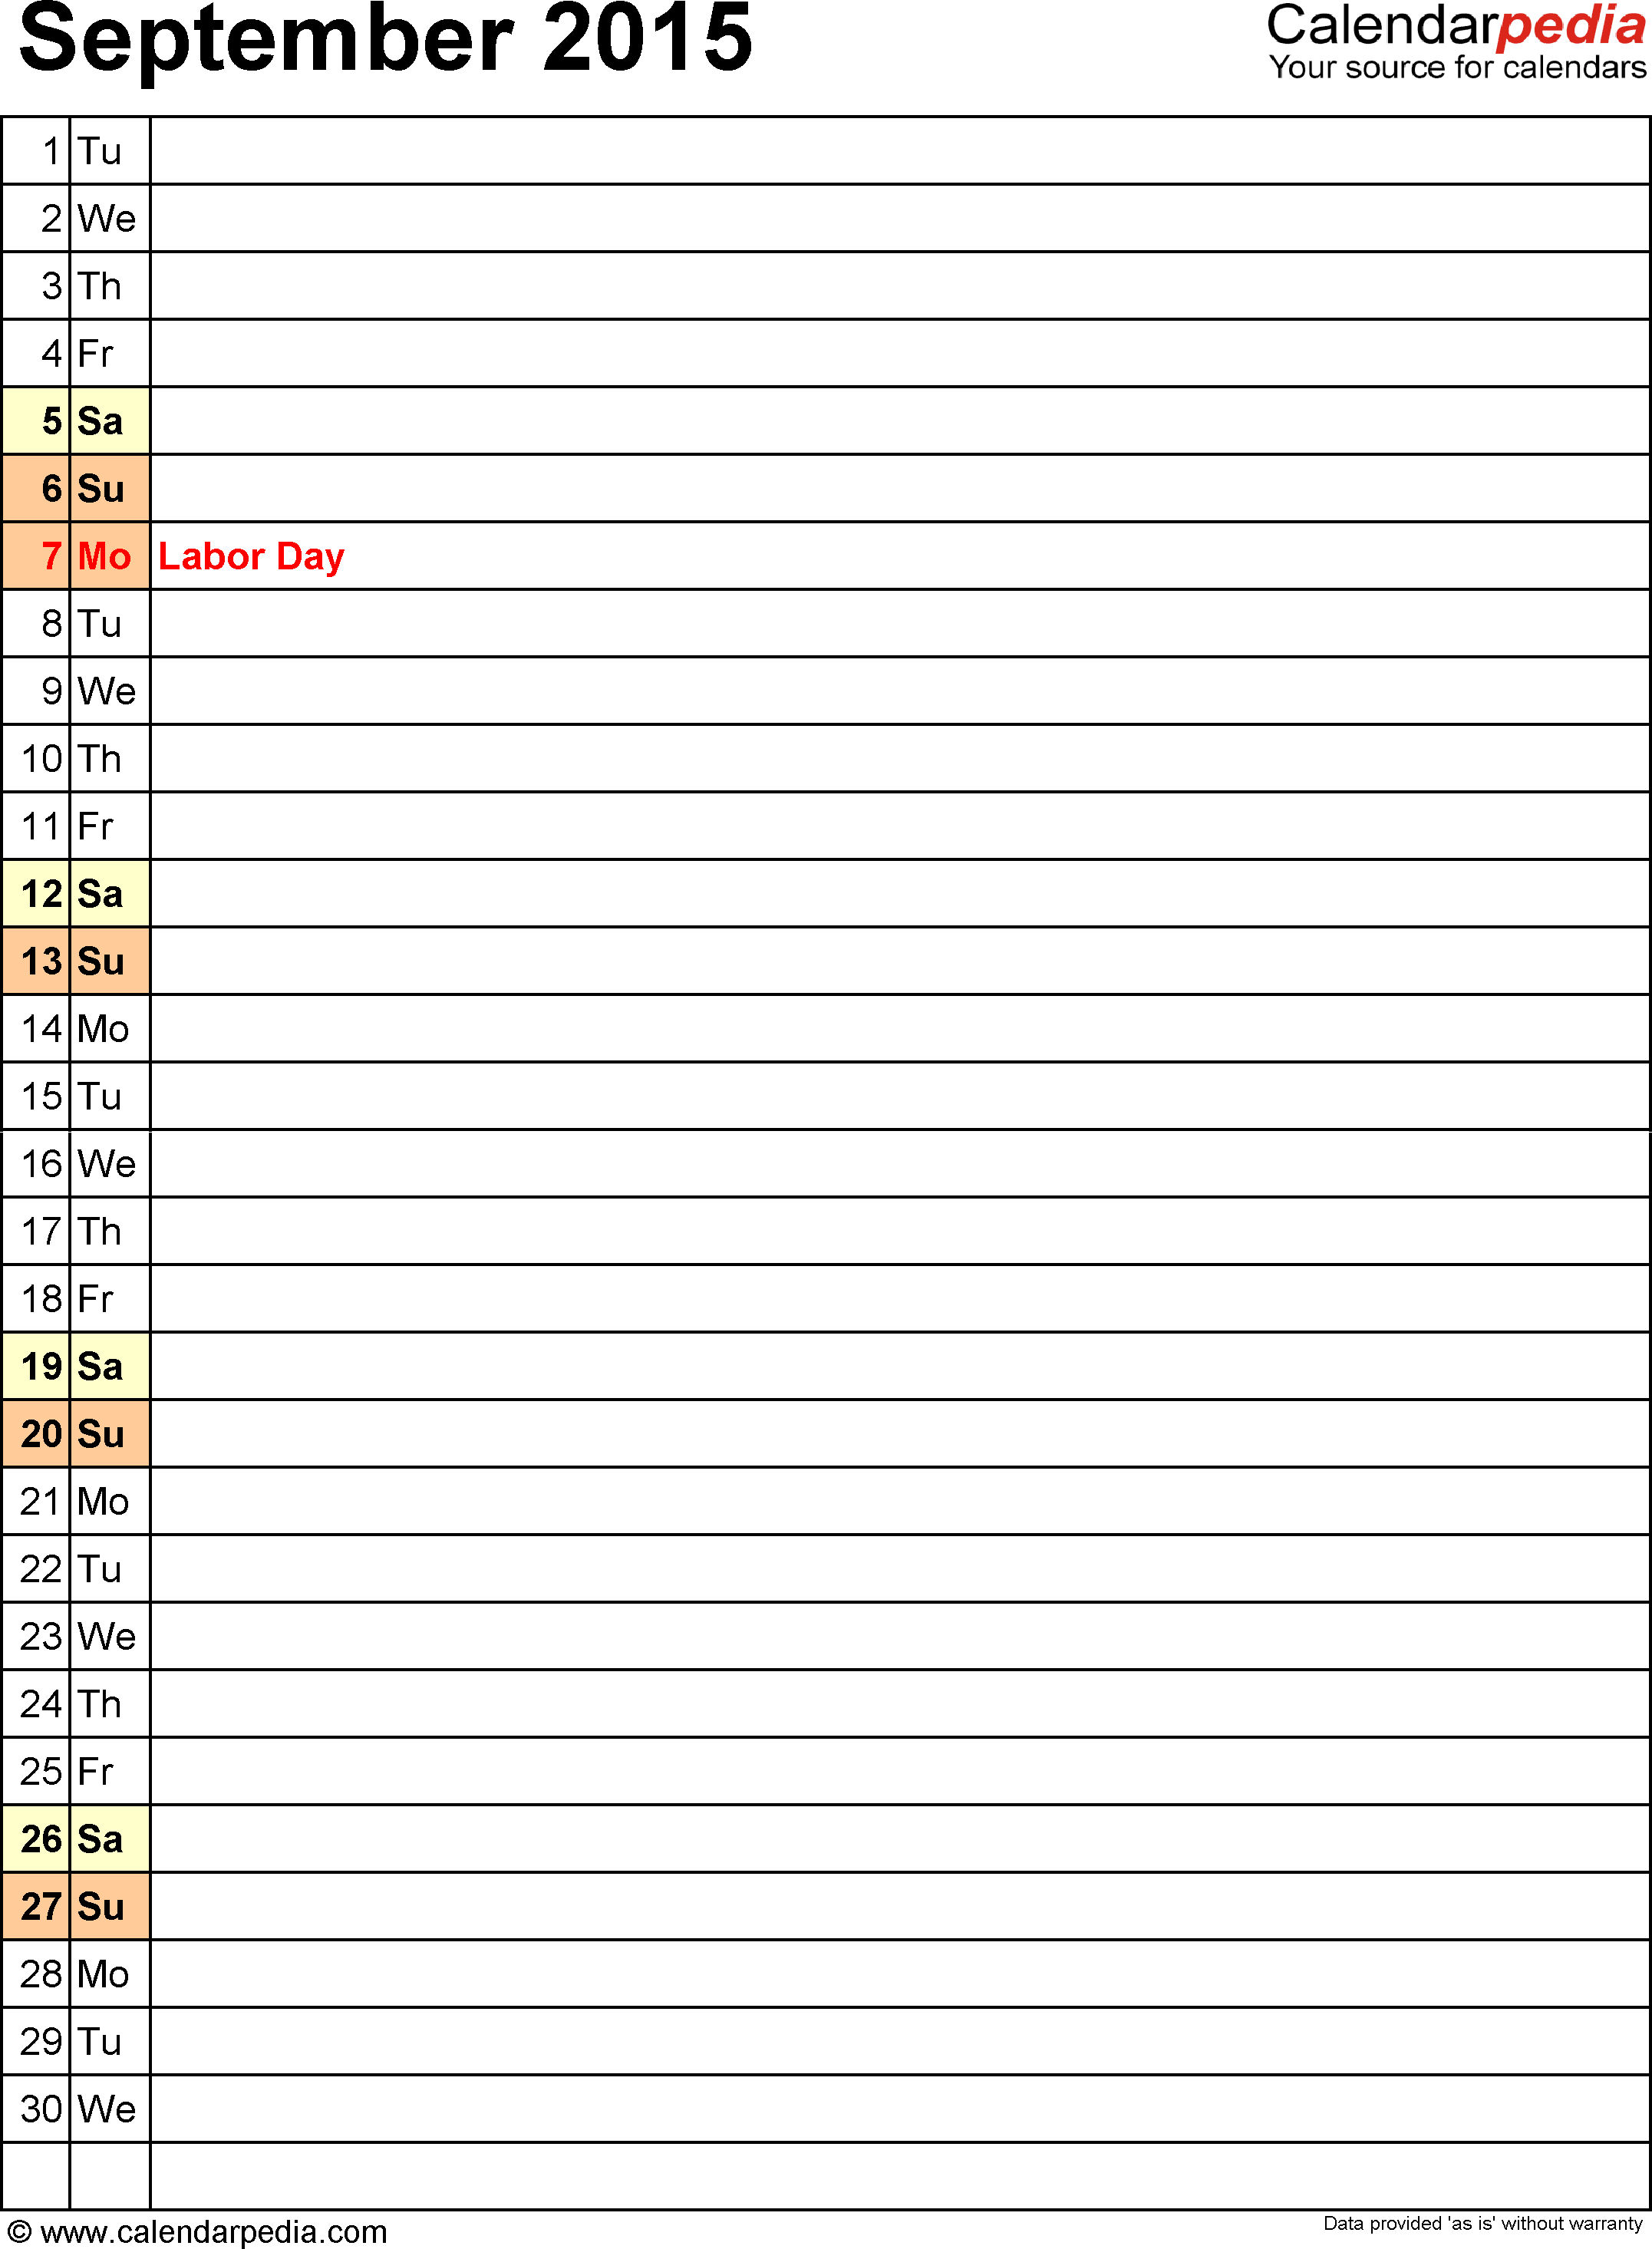 September 2015 calendar, portrait orientation, list view (days aligned vertically), available as printable templates for Word, Excel and PDF